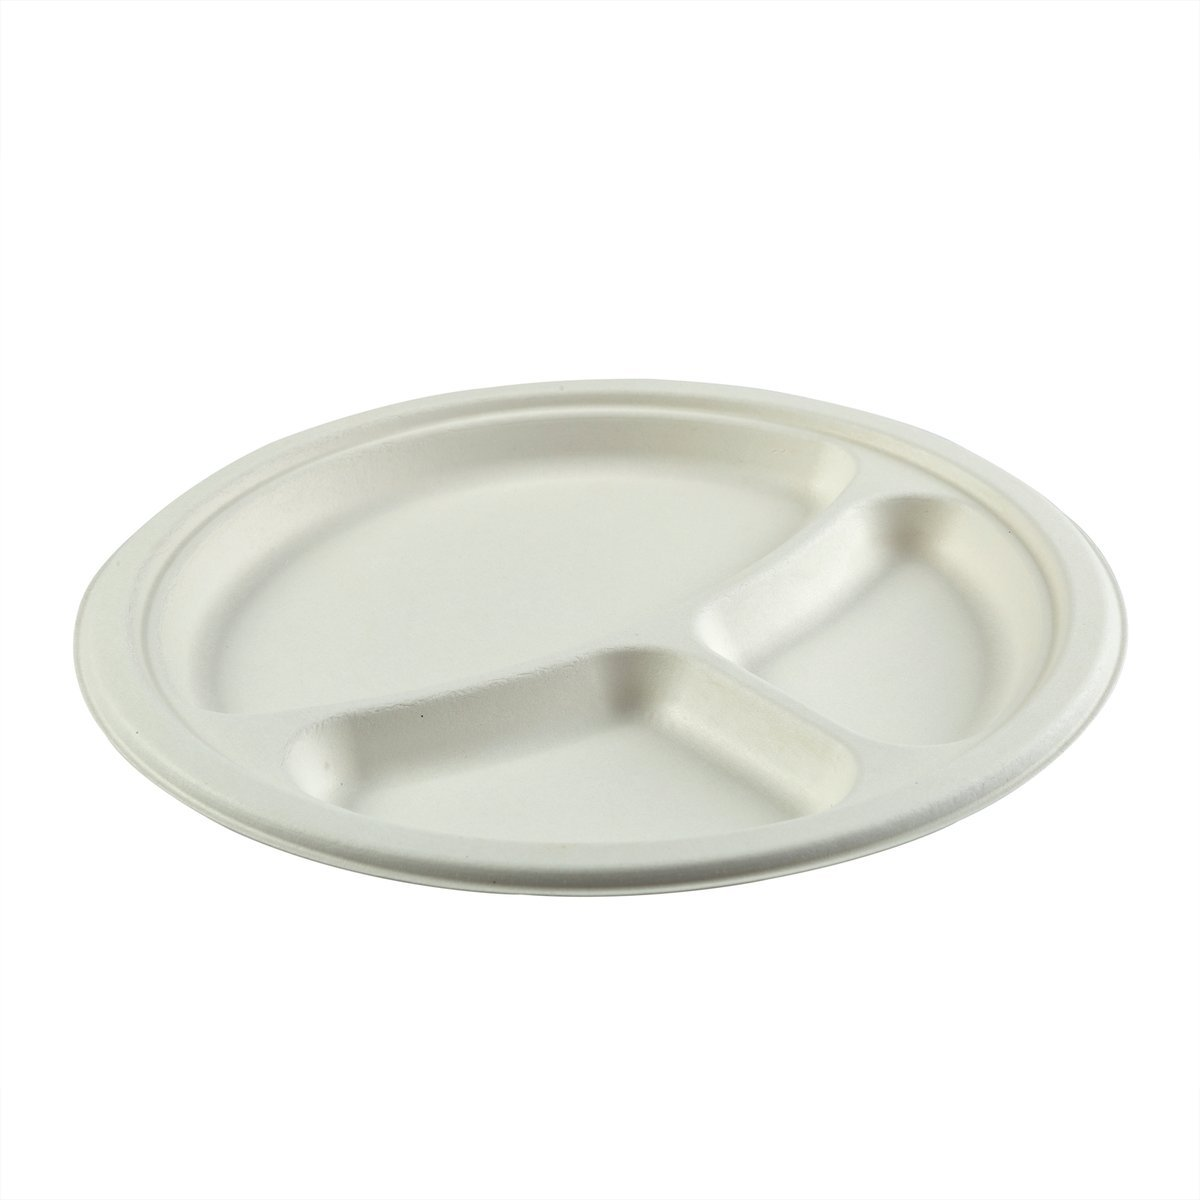 10in 3-Section Round Plate